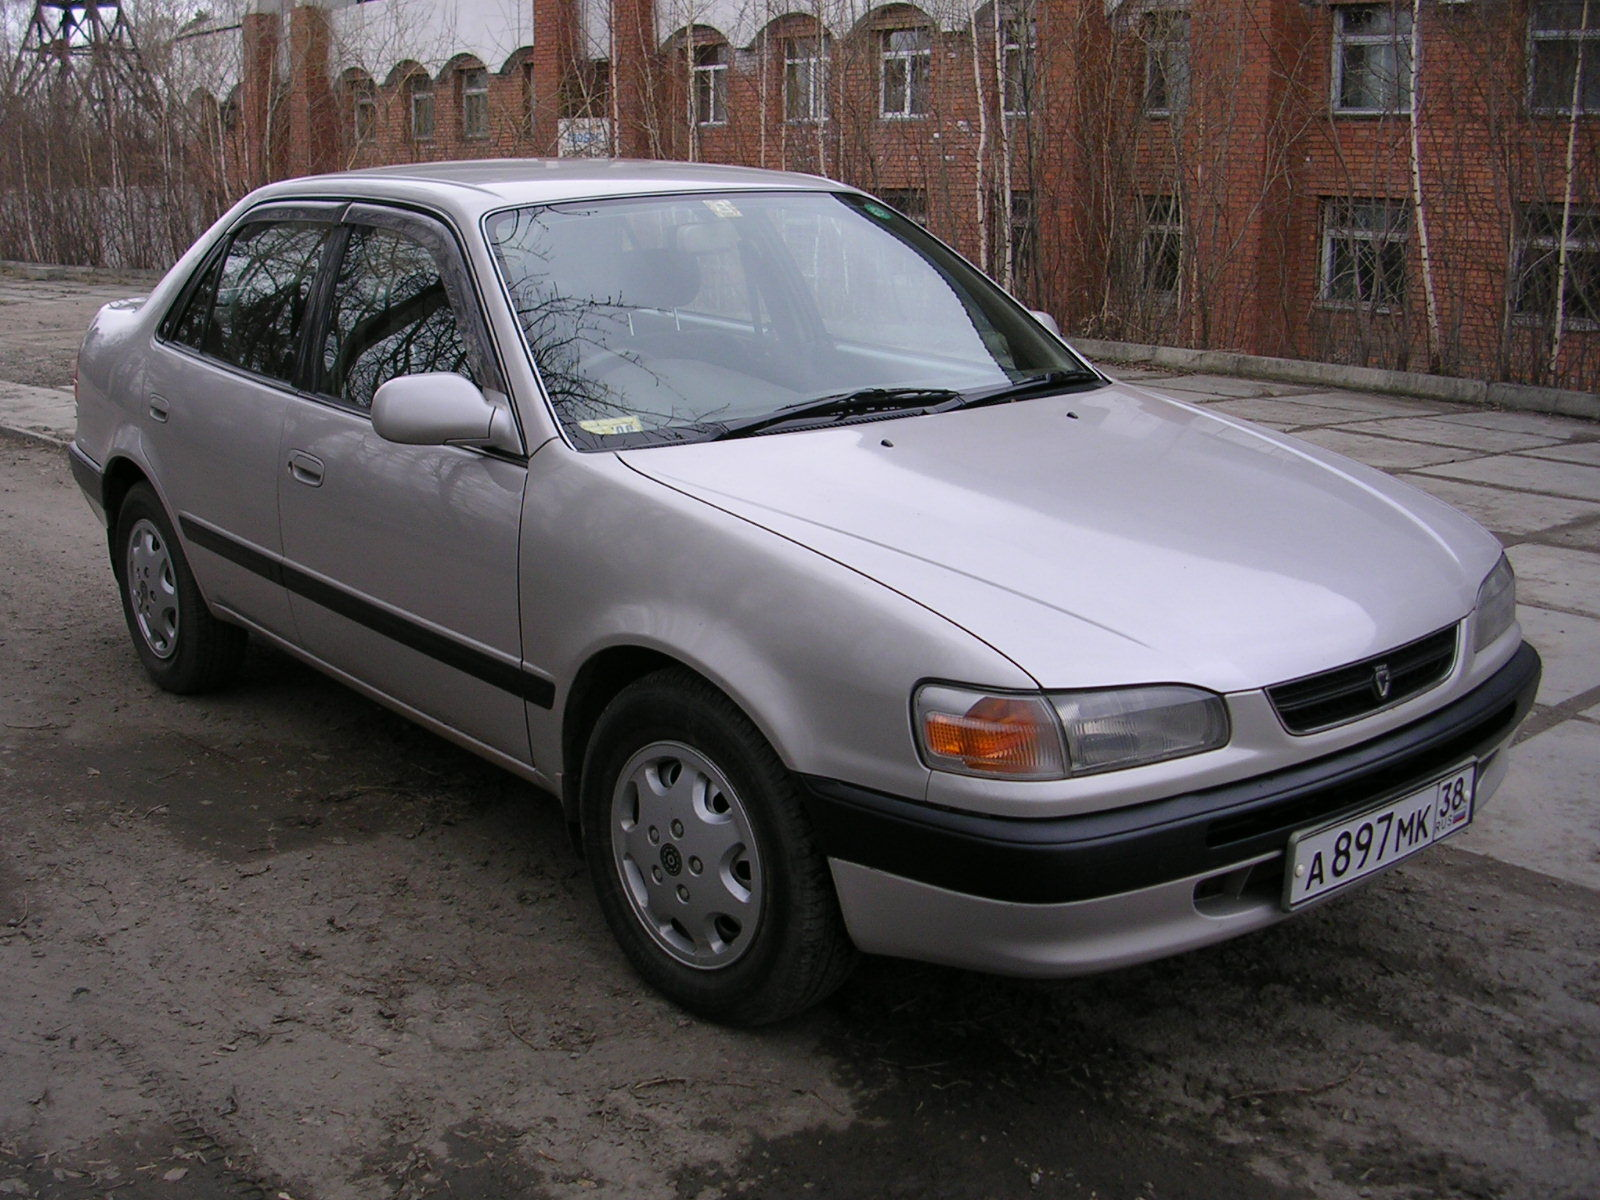 Toyota Corolla 1.8 1995 photo - 1